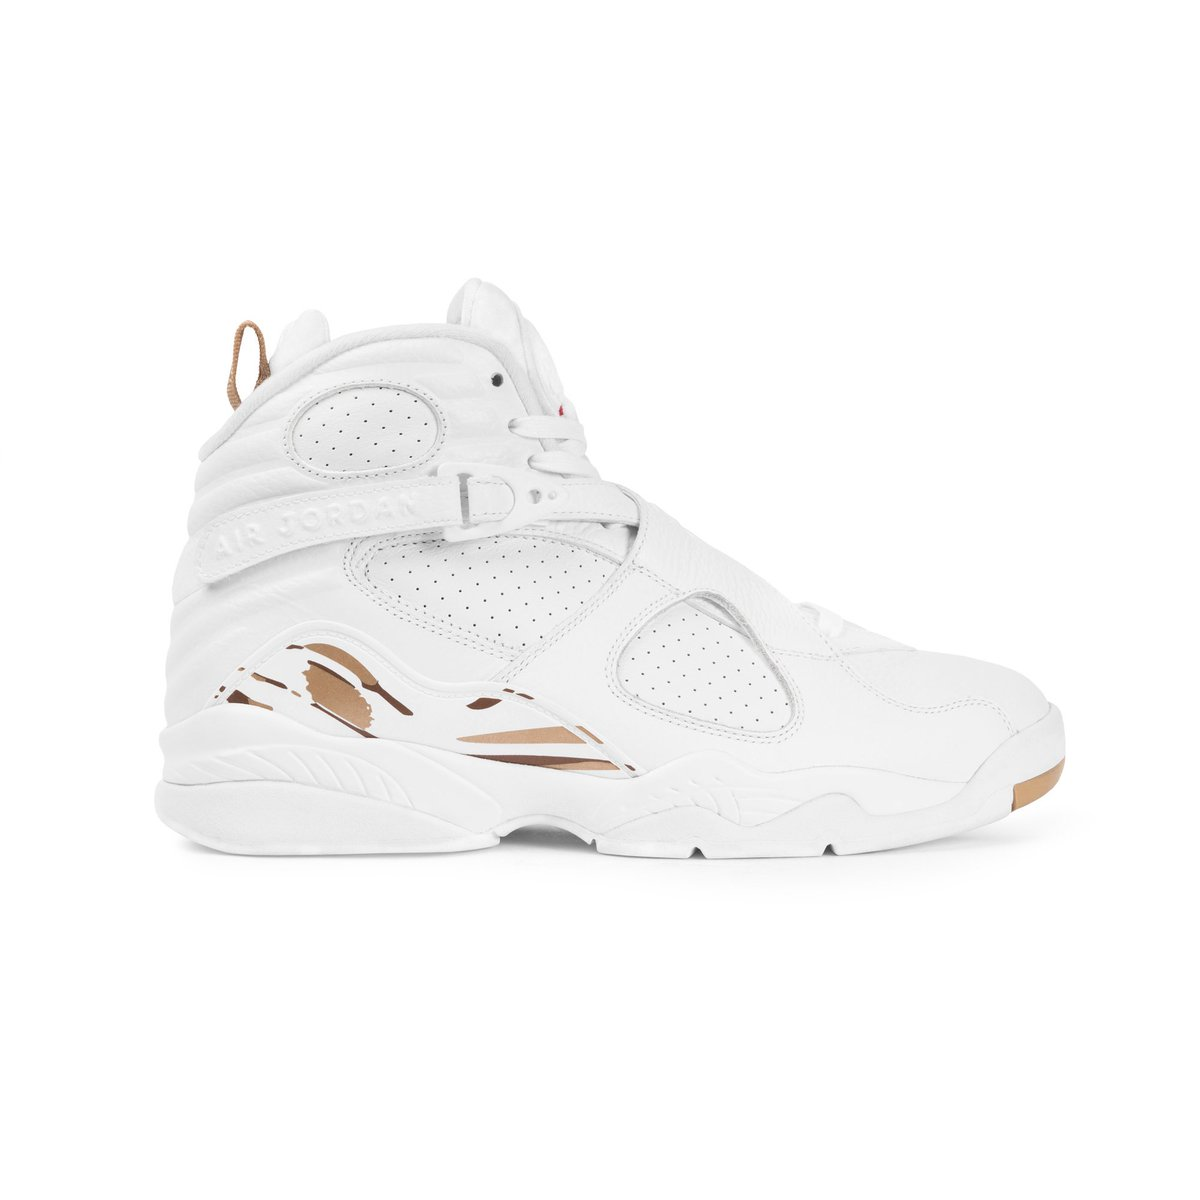 best website 16c6e 64c18 OVO x Air Jordan 8 Retro release via Nike Draw at 11am EST. White   http   bit.ly 2GkfuIJ Black  http   bit.ly 2GhkSMV  pic.twitter.com yygeRZupSU